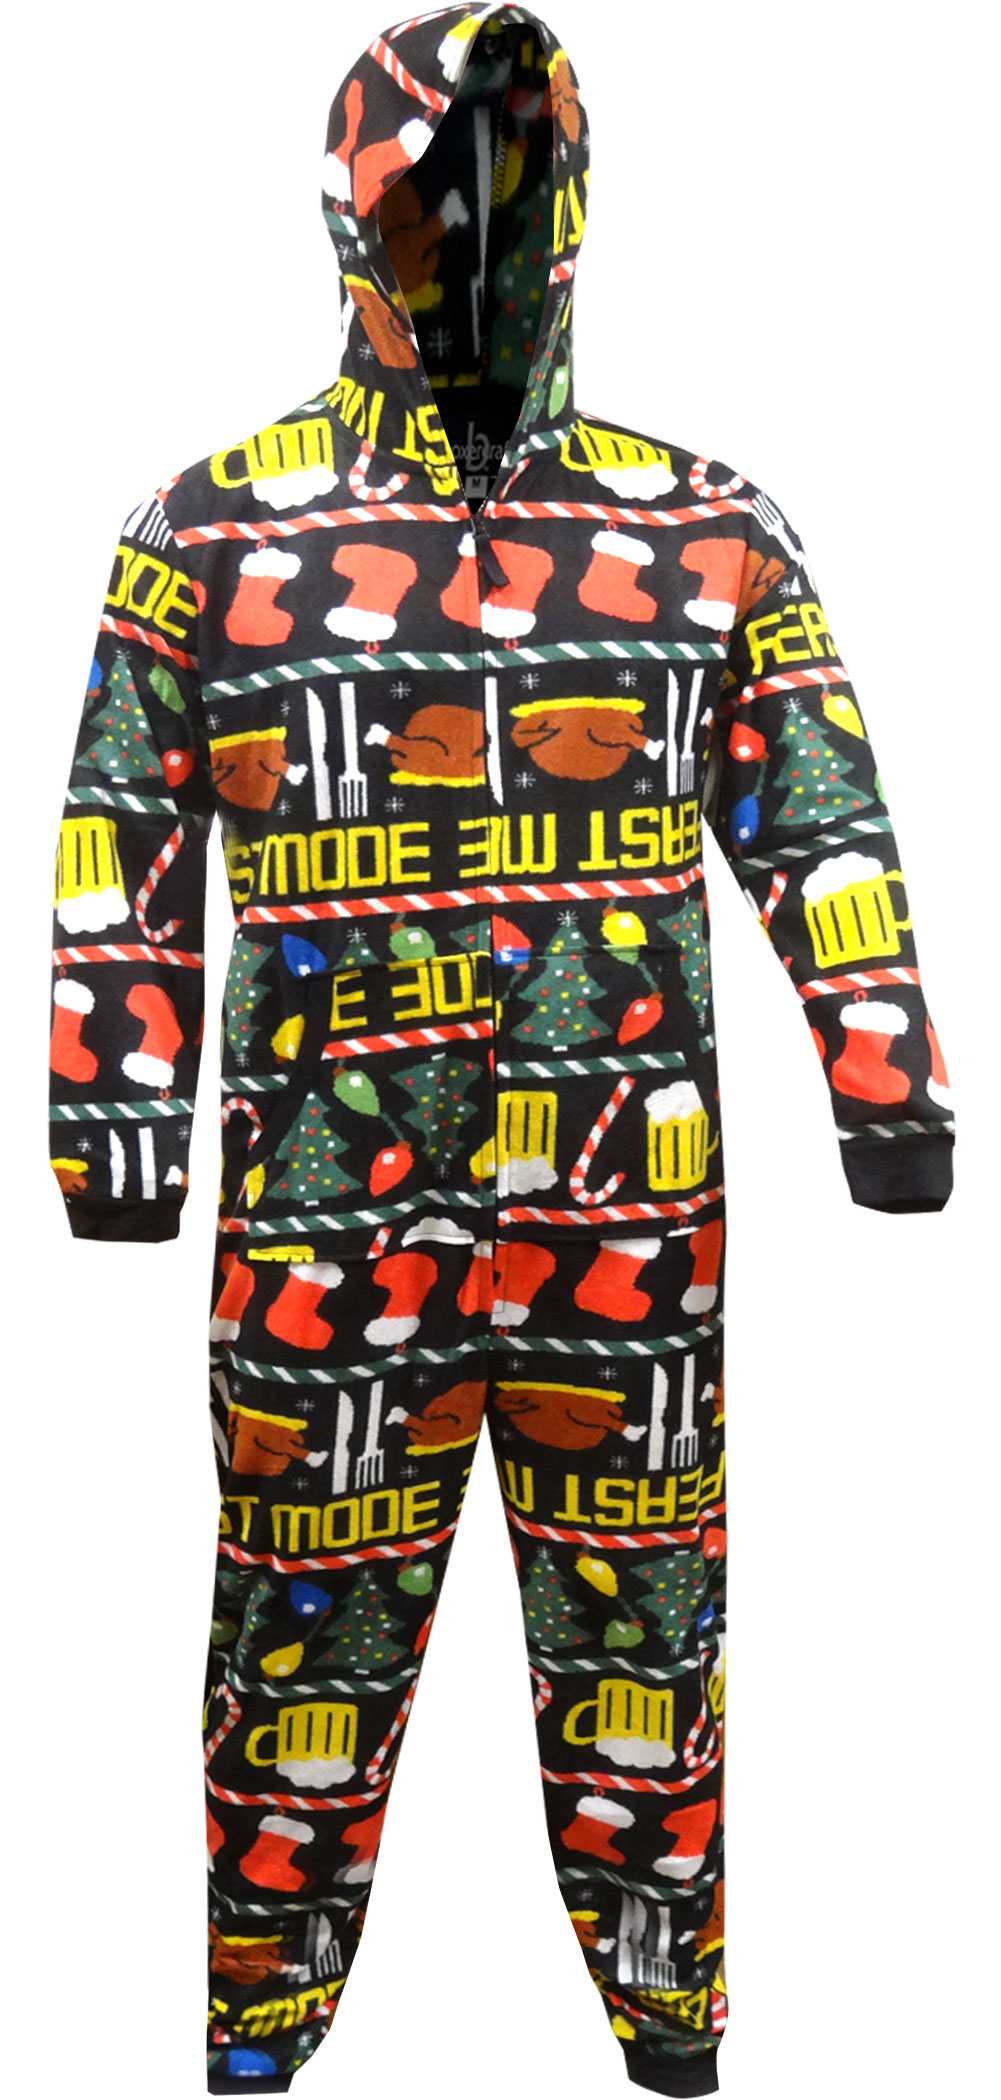 feast mode holiday hooded one piece pajama